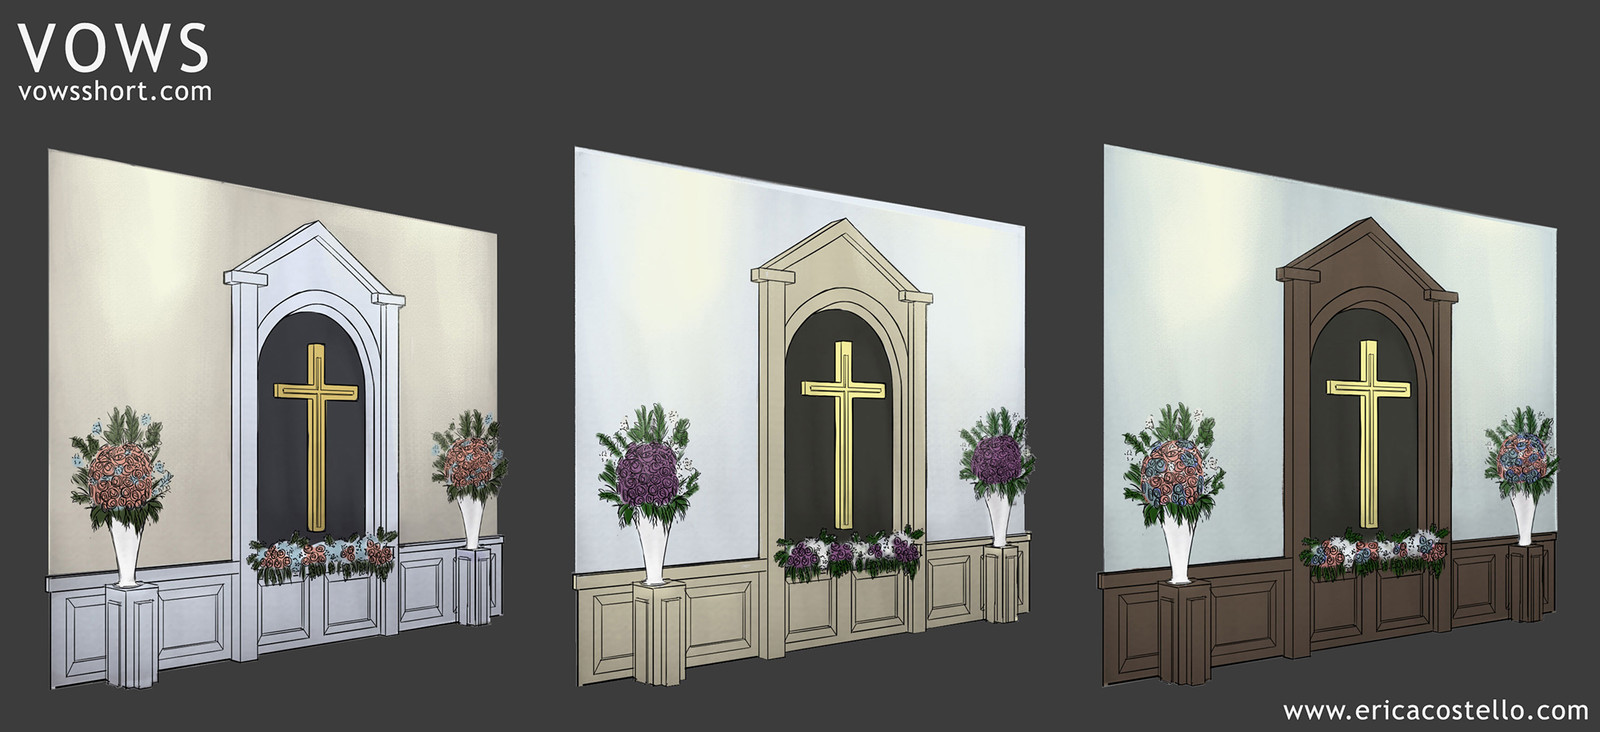 Vows - Church Altar Concepts